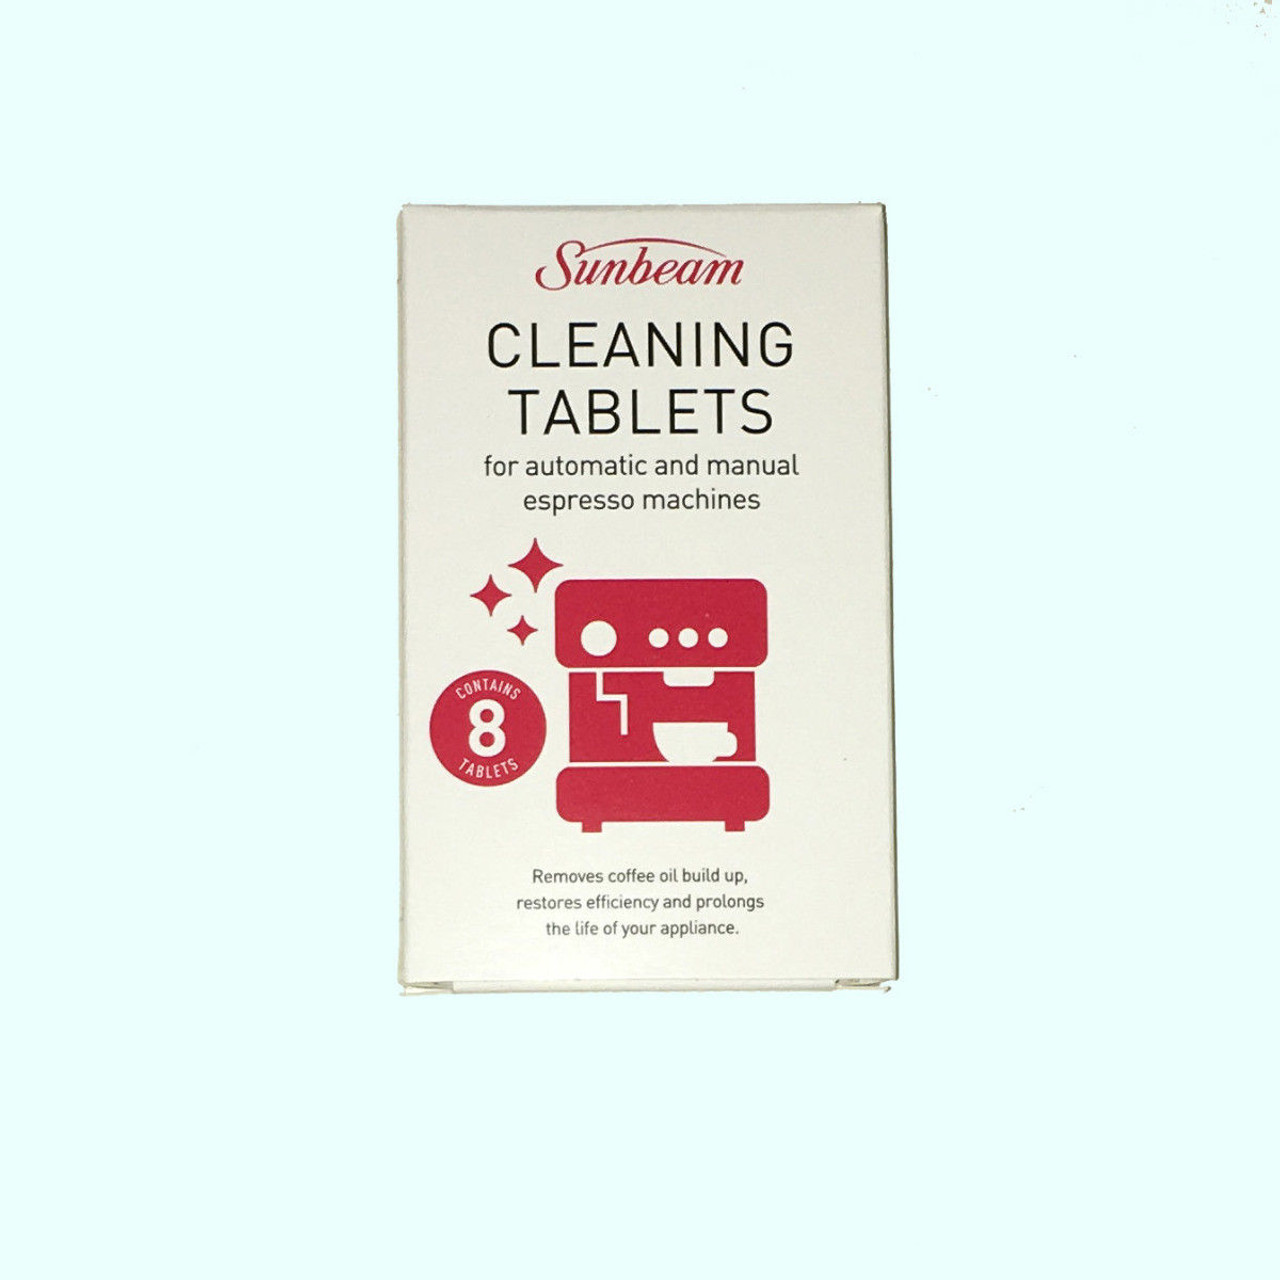 Sunbeam EM0020 Espresso Machine Cleaning Tablets x 8